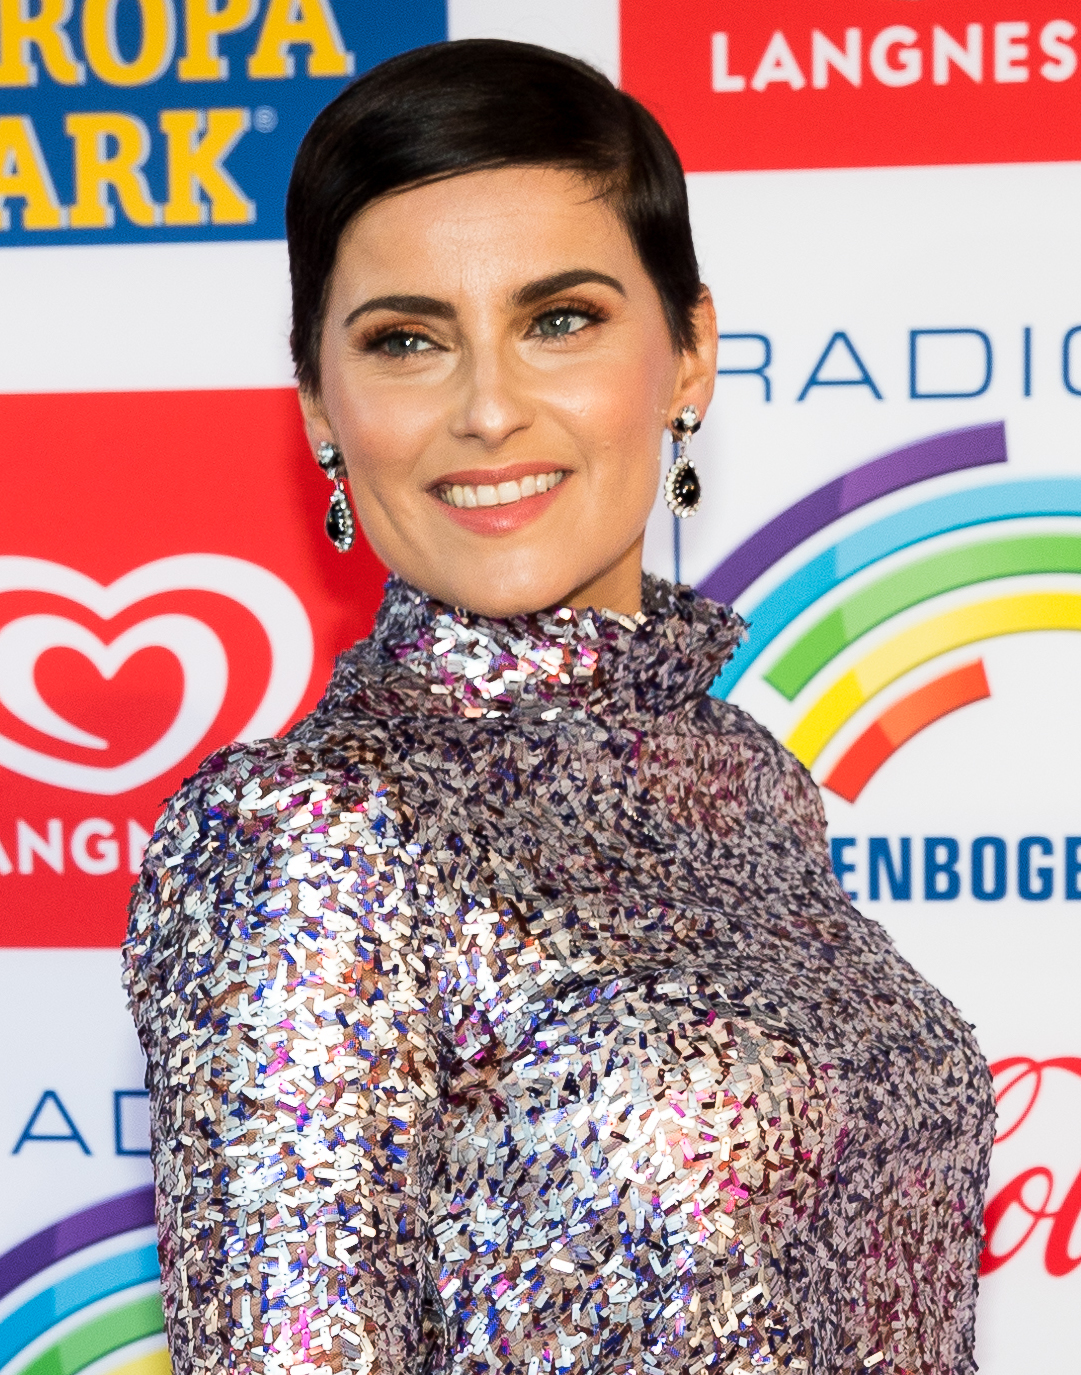 Nelly Furtado Wikipedia A Enciclopedia Livre